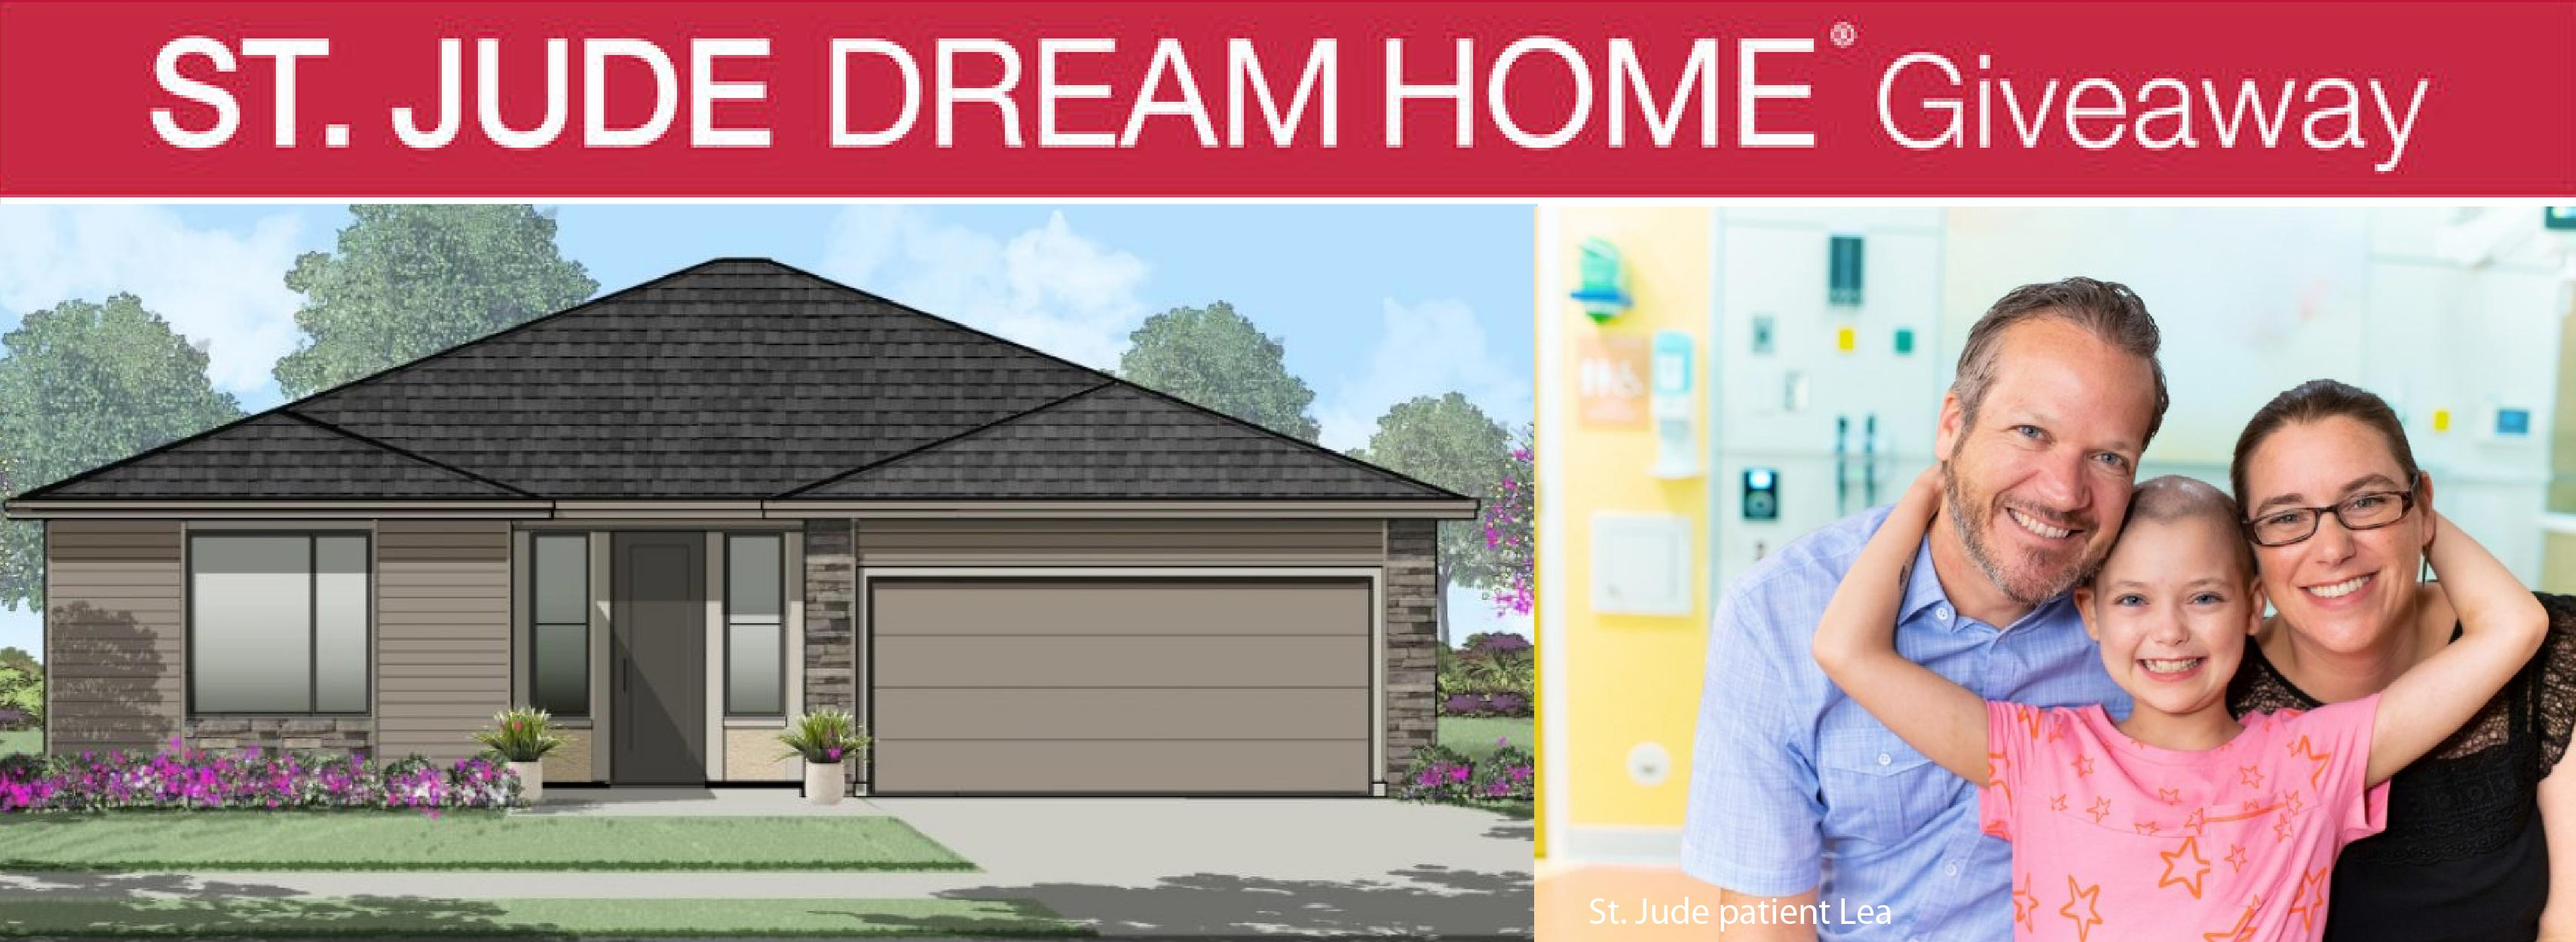 St Jude Dream Home Giveaway